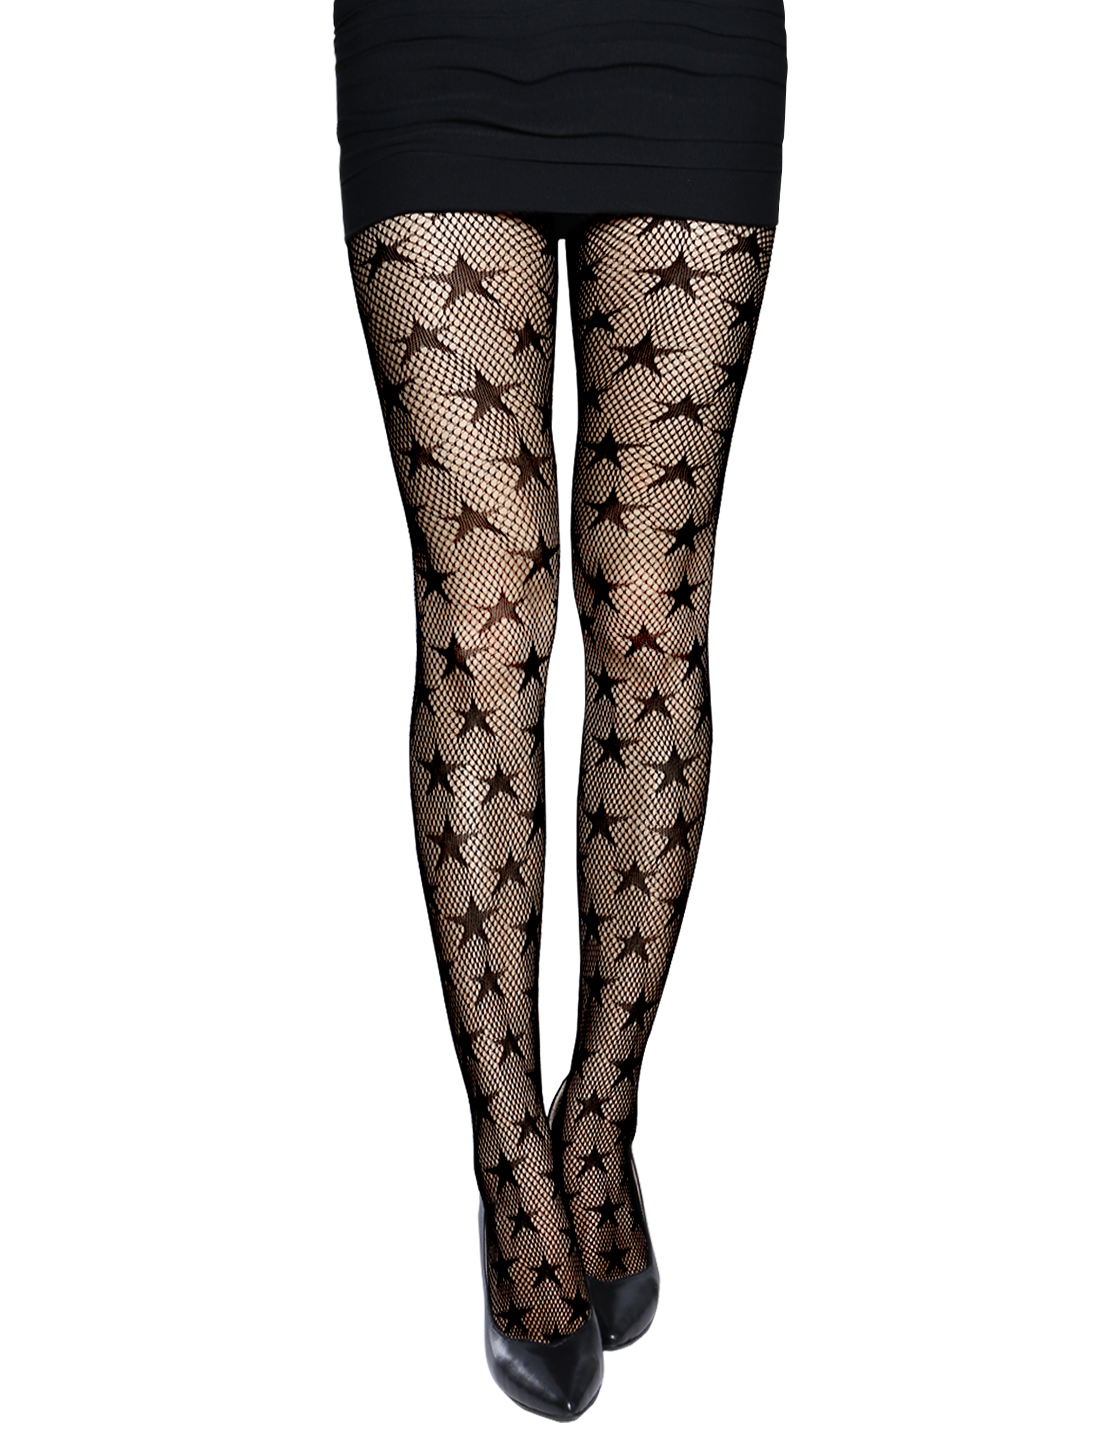 Women Stretchy Stars Design Seamless Sexy Fishnet Pantyhose Black XS